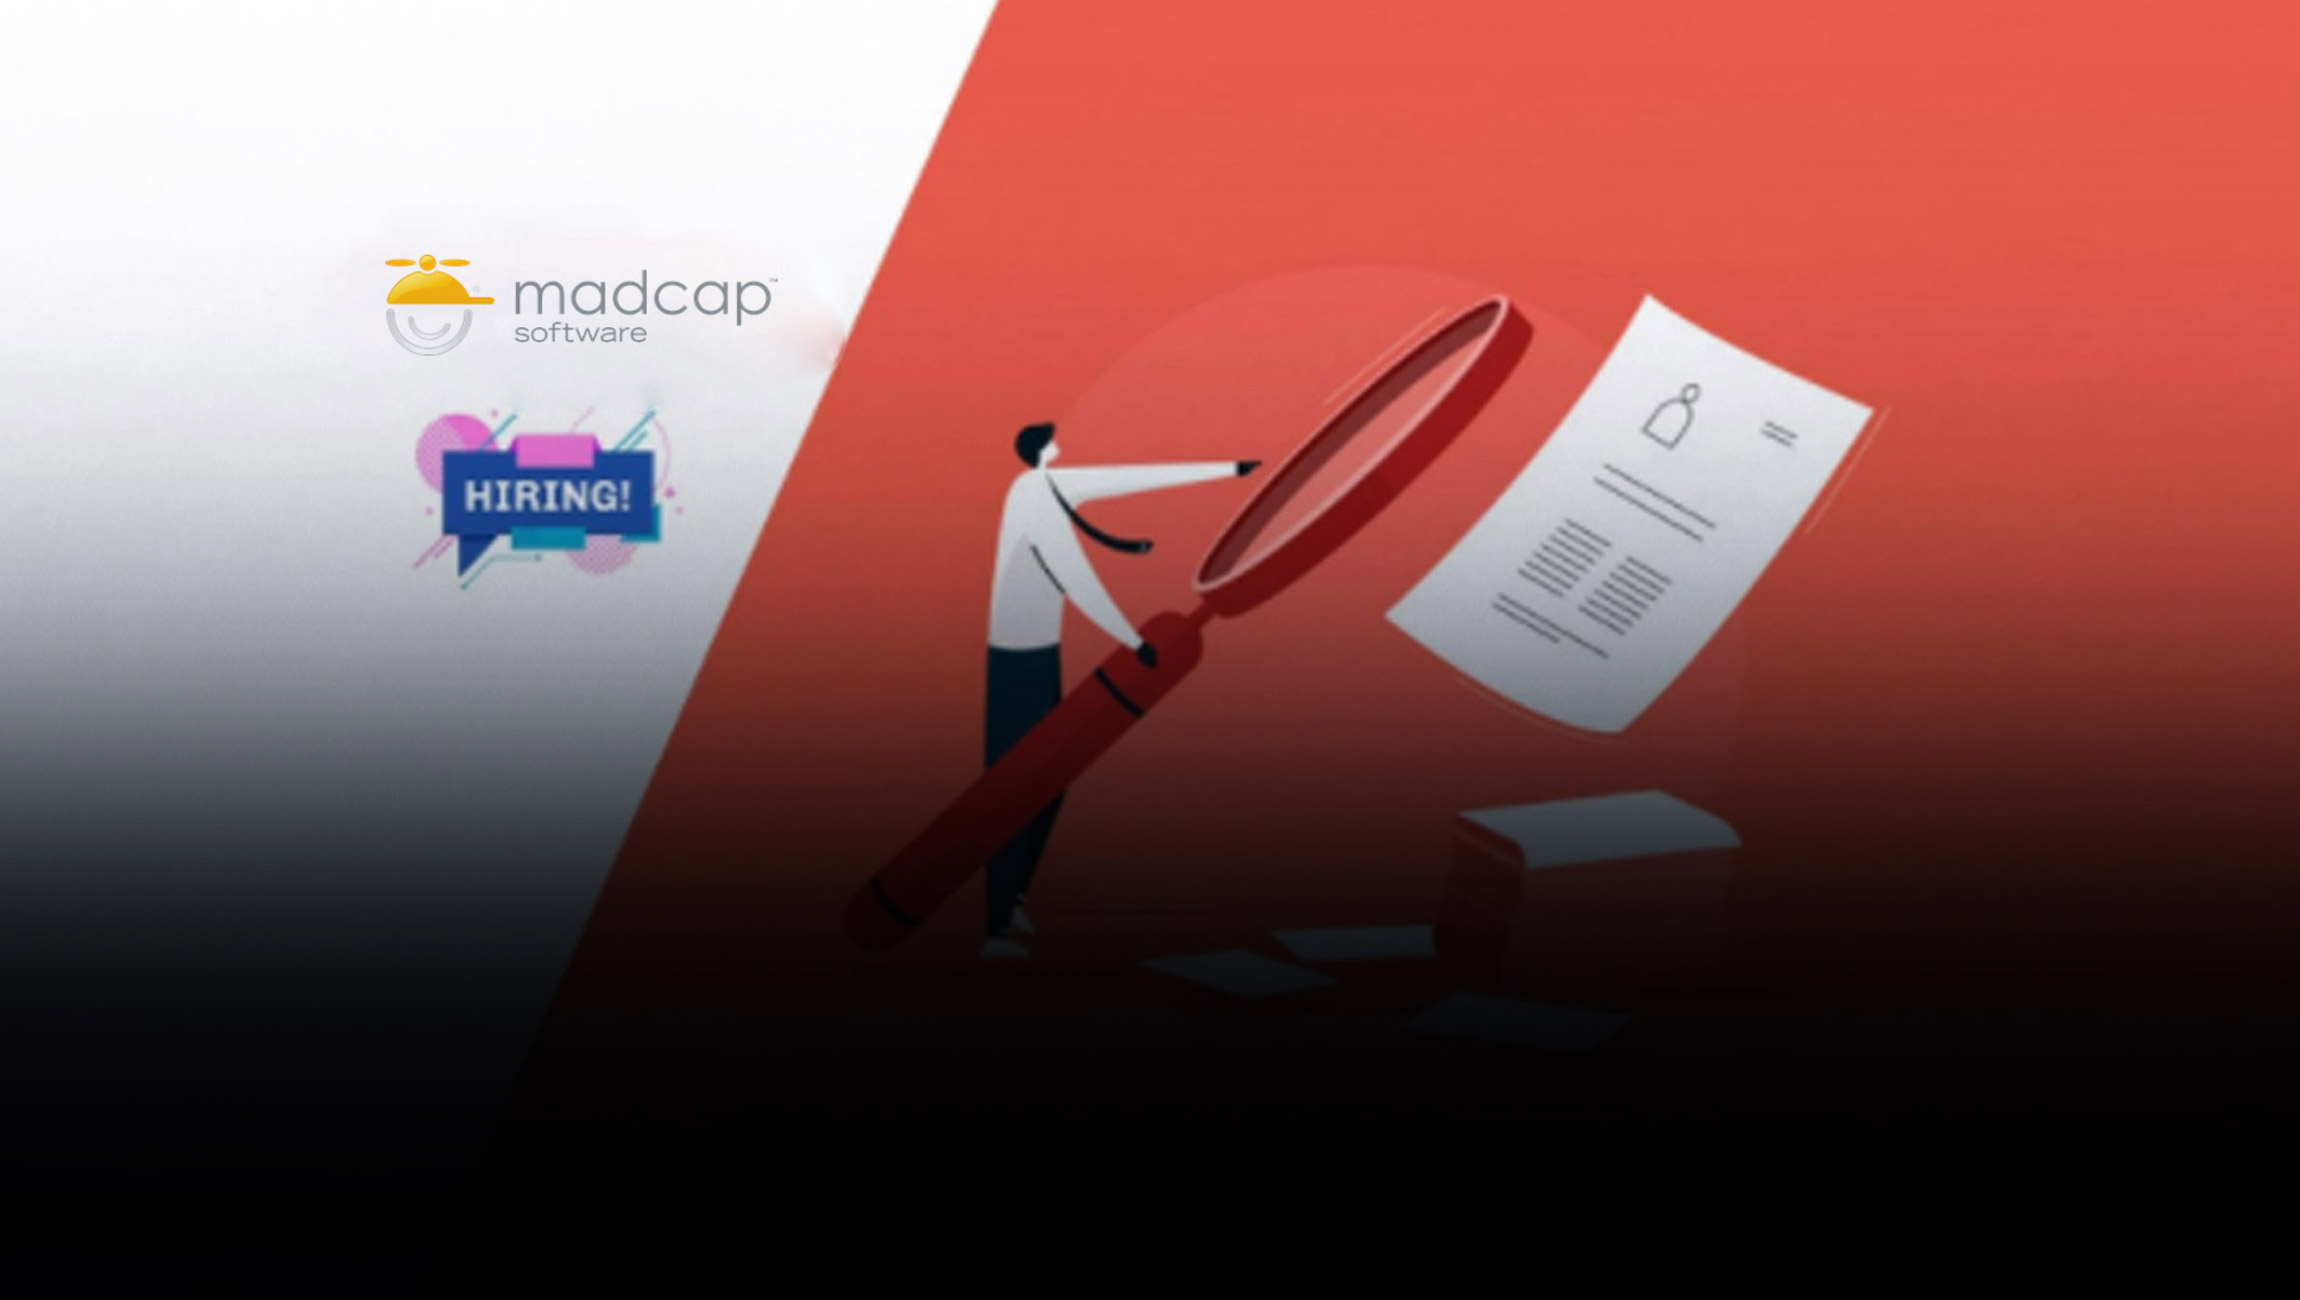 Former Siemens and Adobe Sales Leader Aubrey Williams Joins MadCap Software as Vice President of Sales